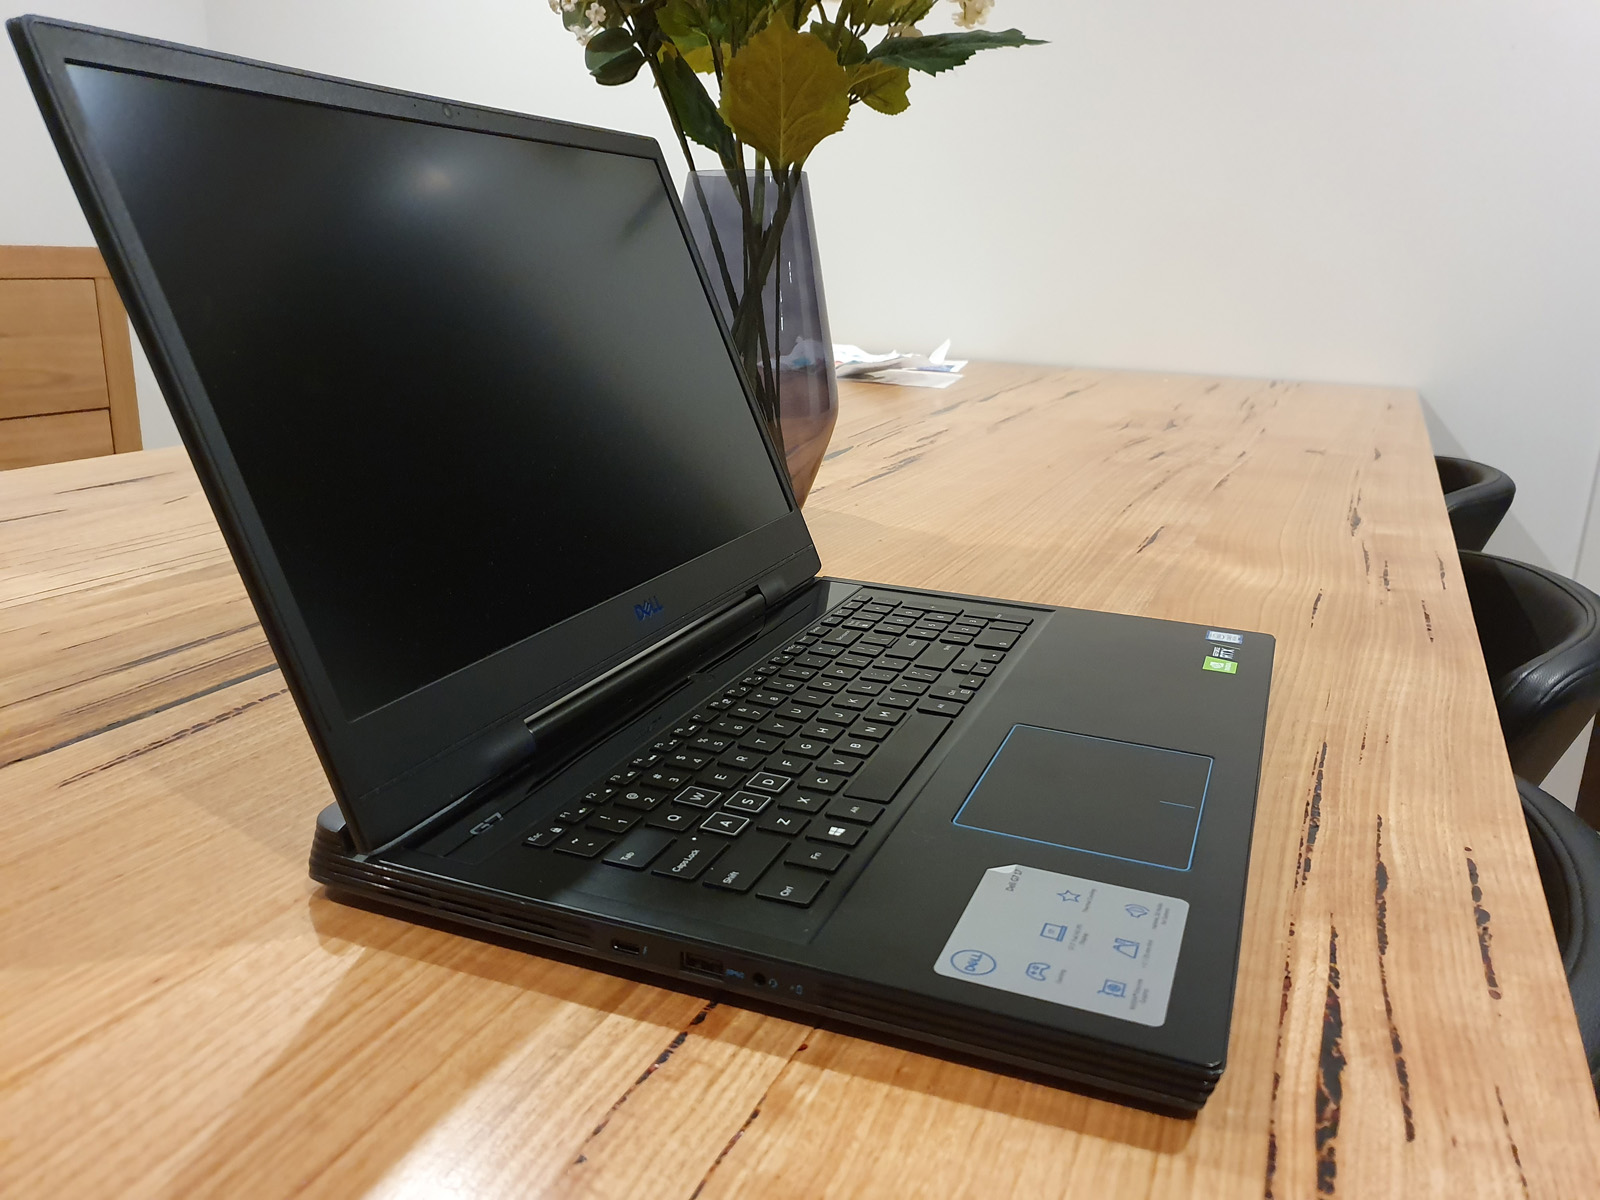 Review: Dell G7 delivers RTX graphics in a laptop for mobile